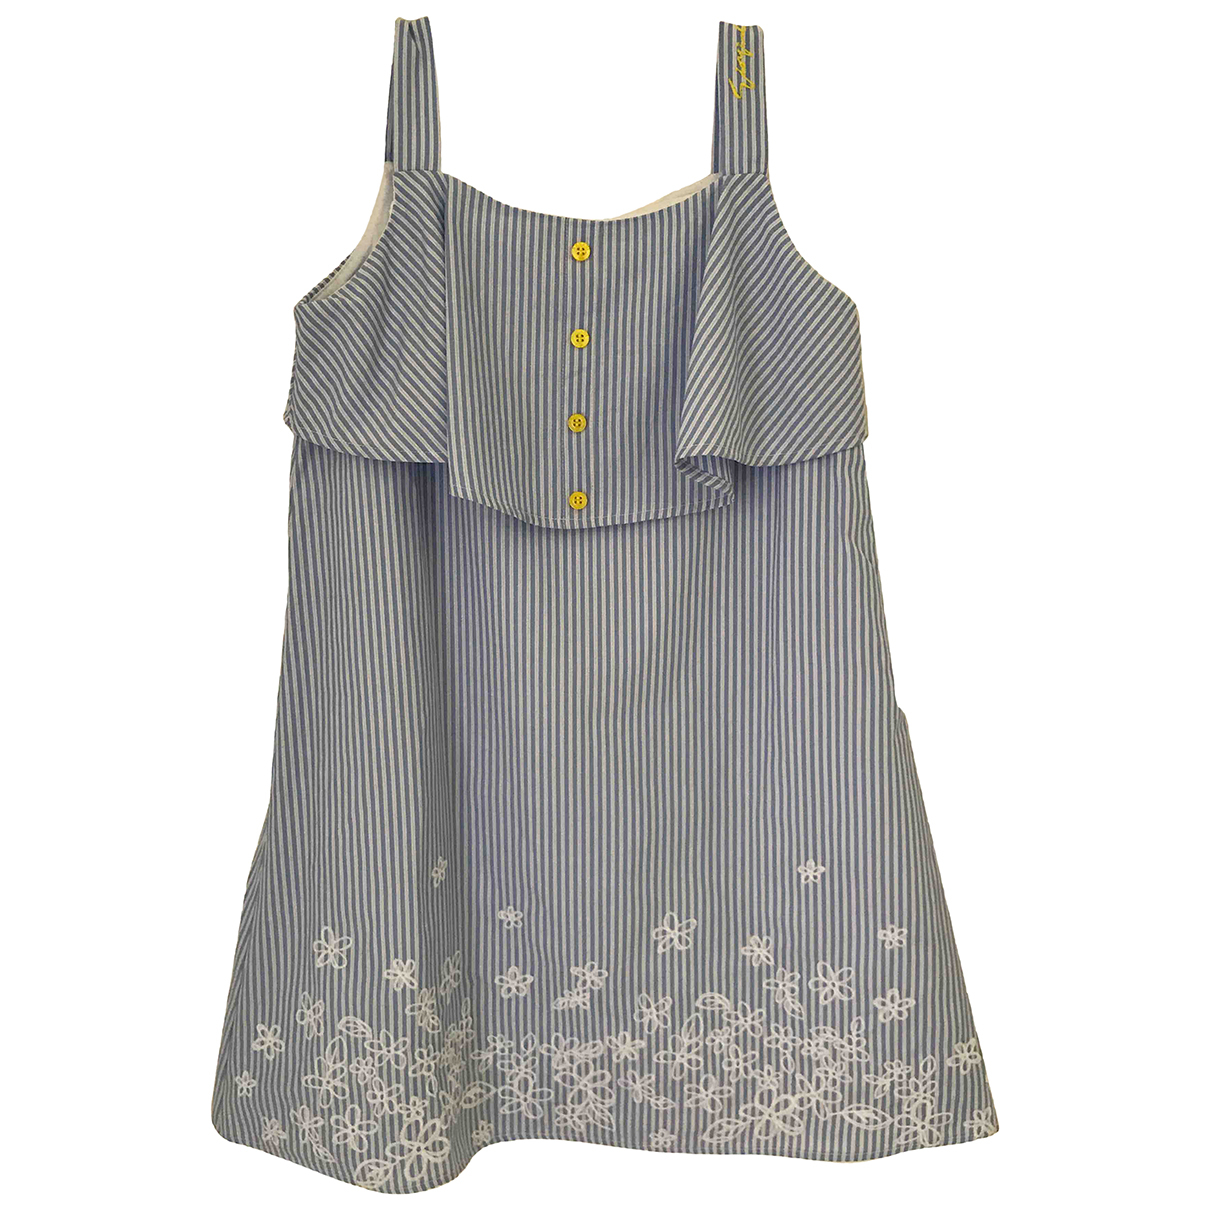 Emporio Armani \N Multicolour Cotton dress for Kids 8 years - up to 128cm FR